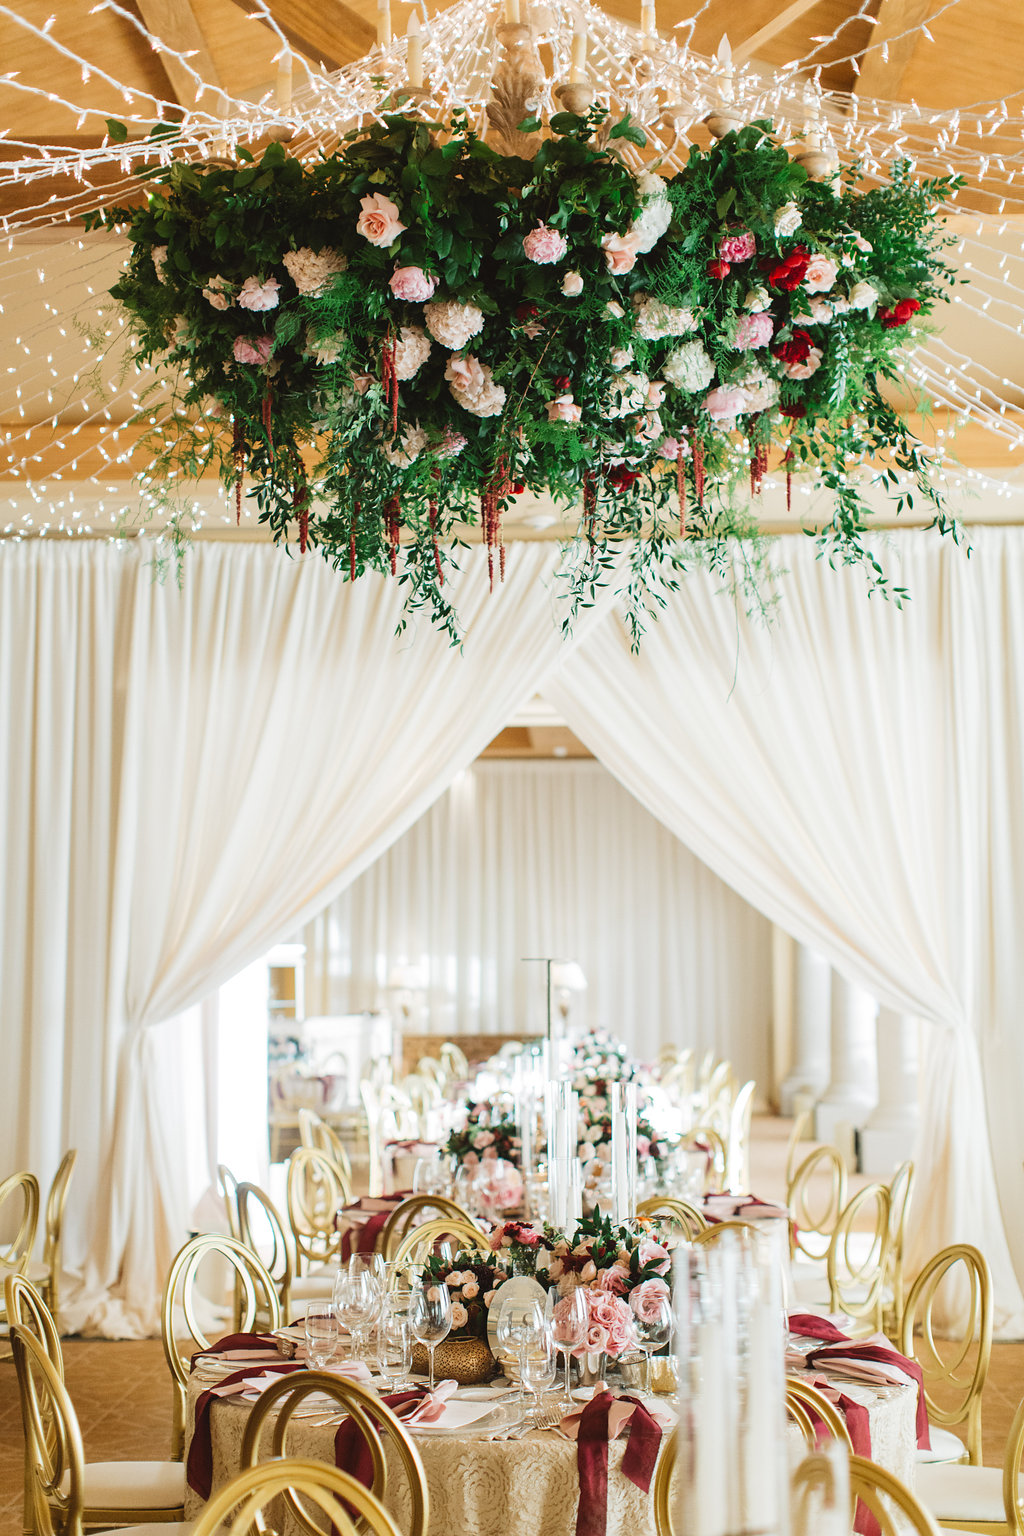 Wedding Ideas: Fall Wedding Décor Inspiration - Inside Weddings